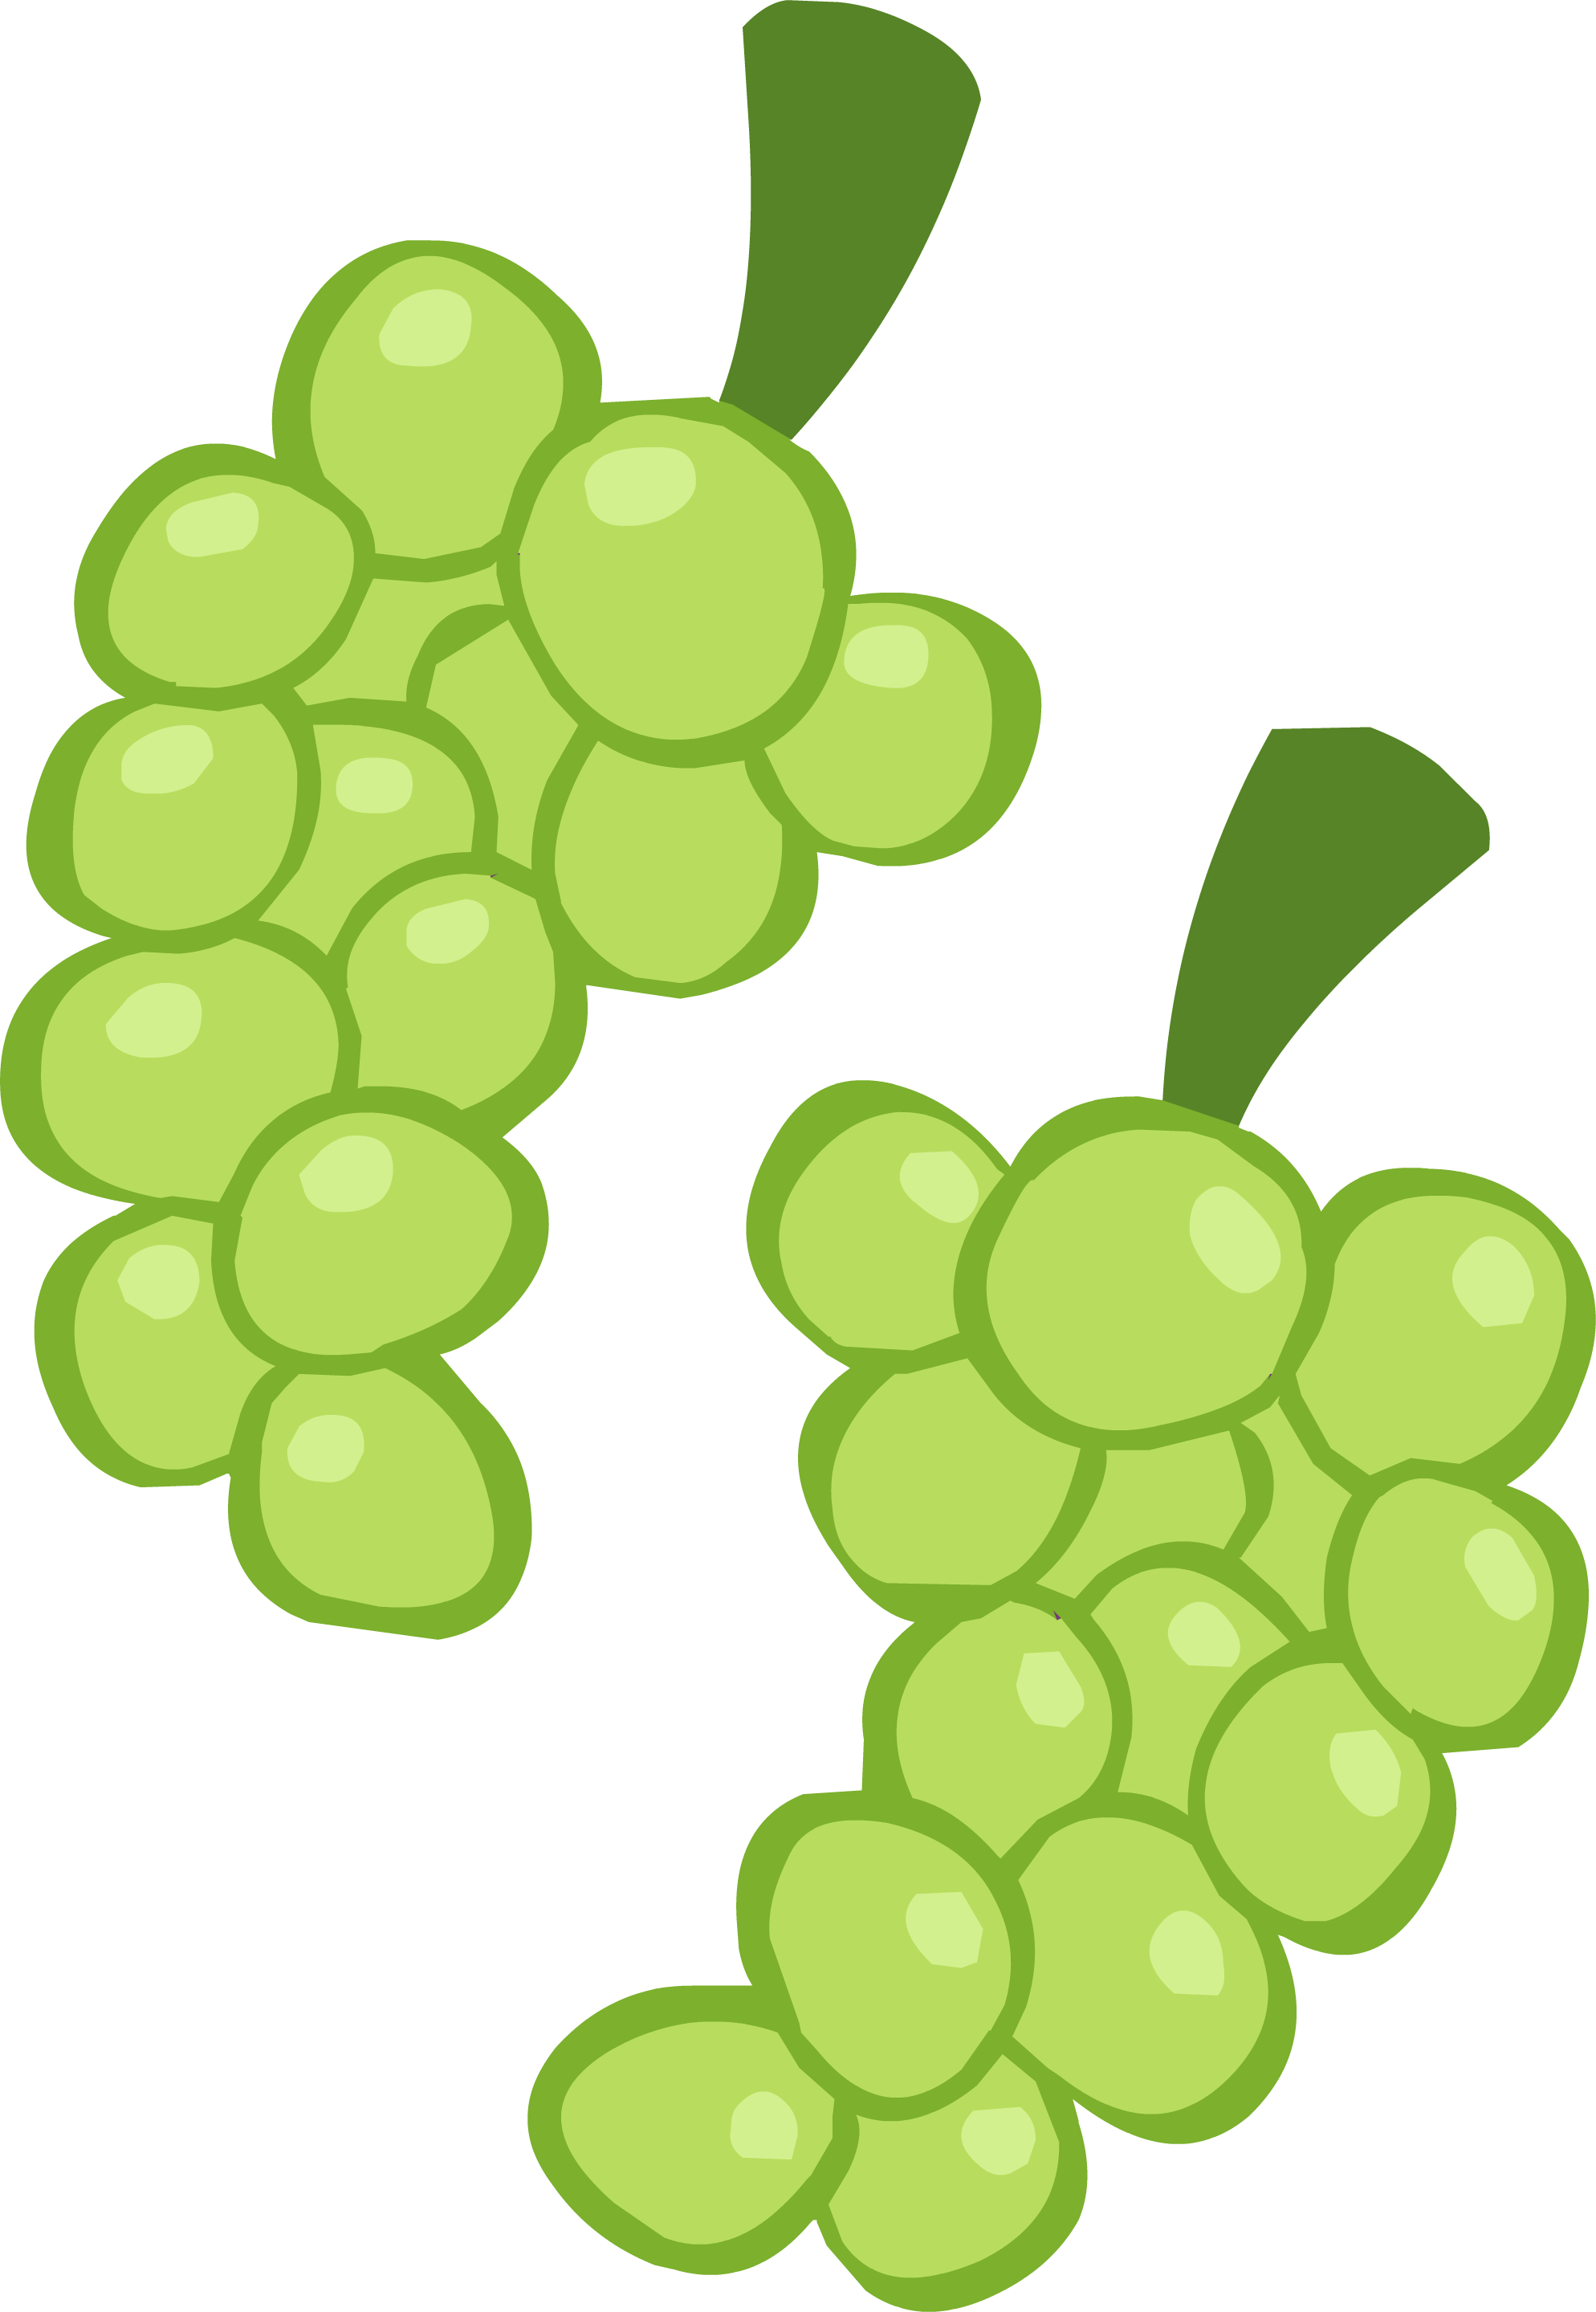 Grapes clipart leaves. Image ponymaker png my